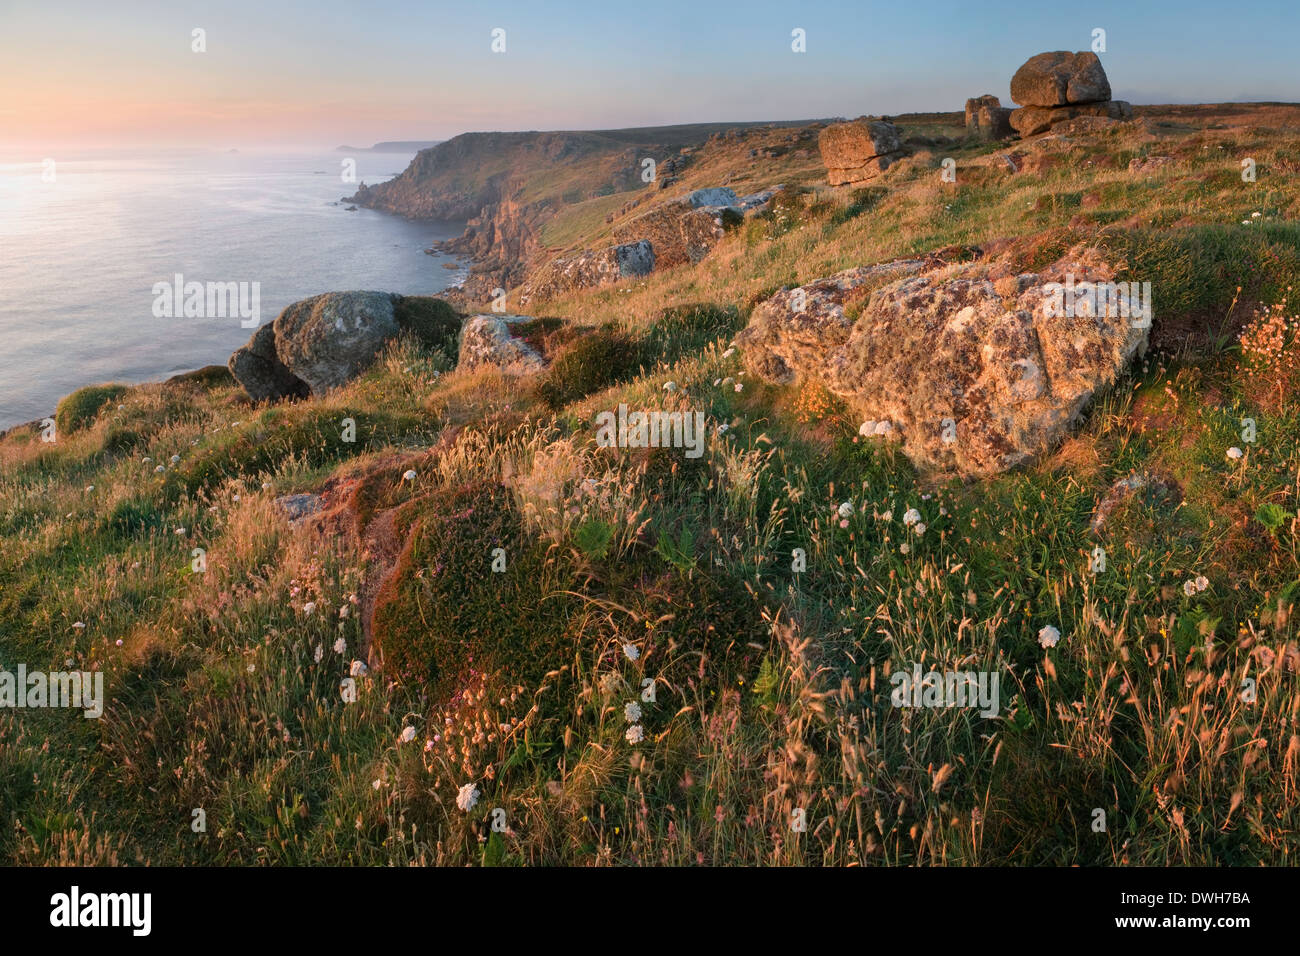 A hazy sun sets over Sennen Cove at Land's End, Cornwall in Summer. Stock Photo